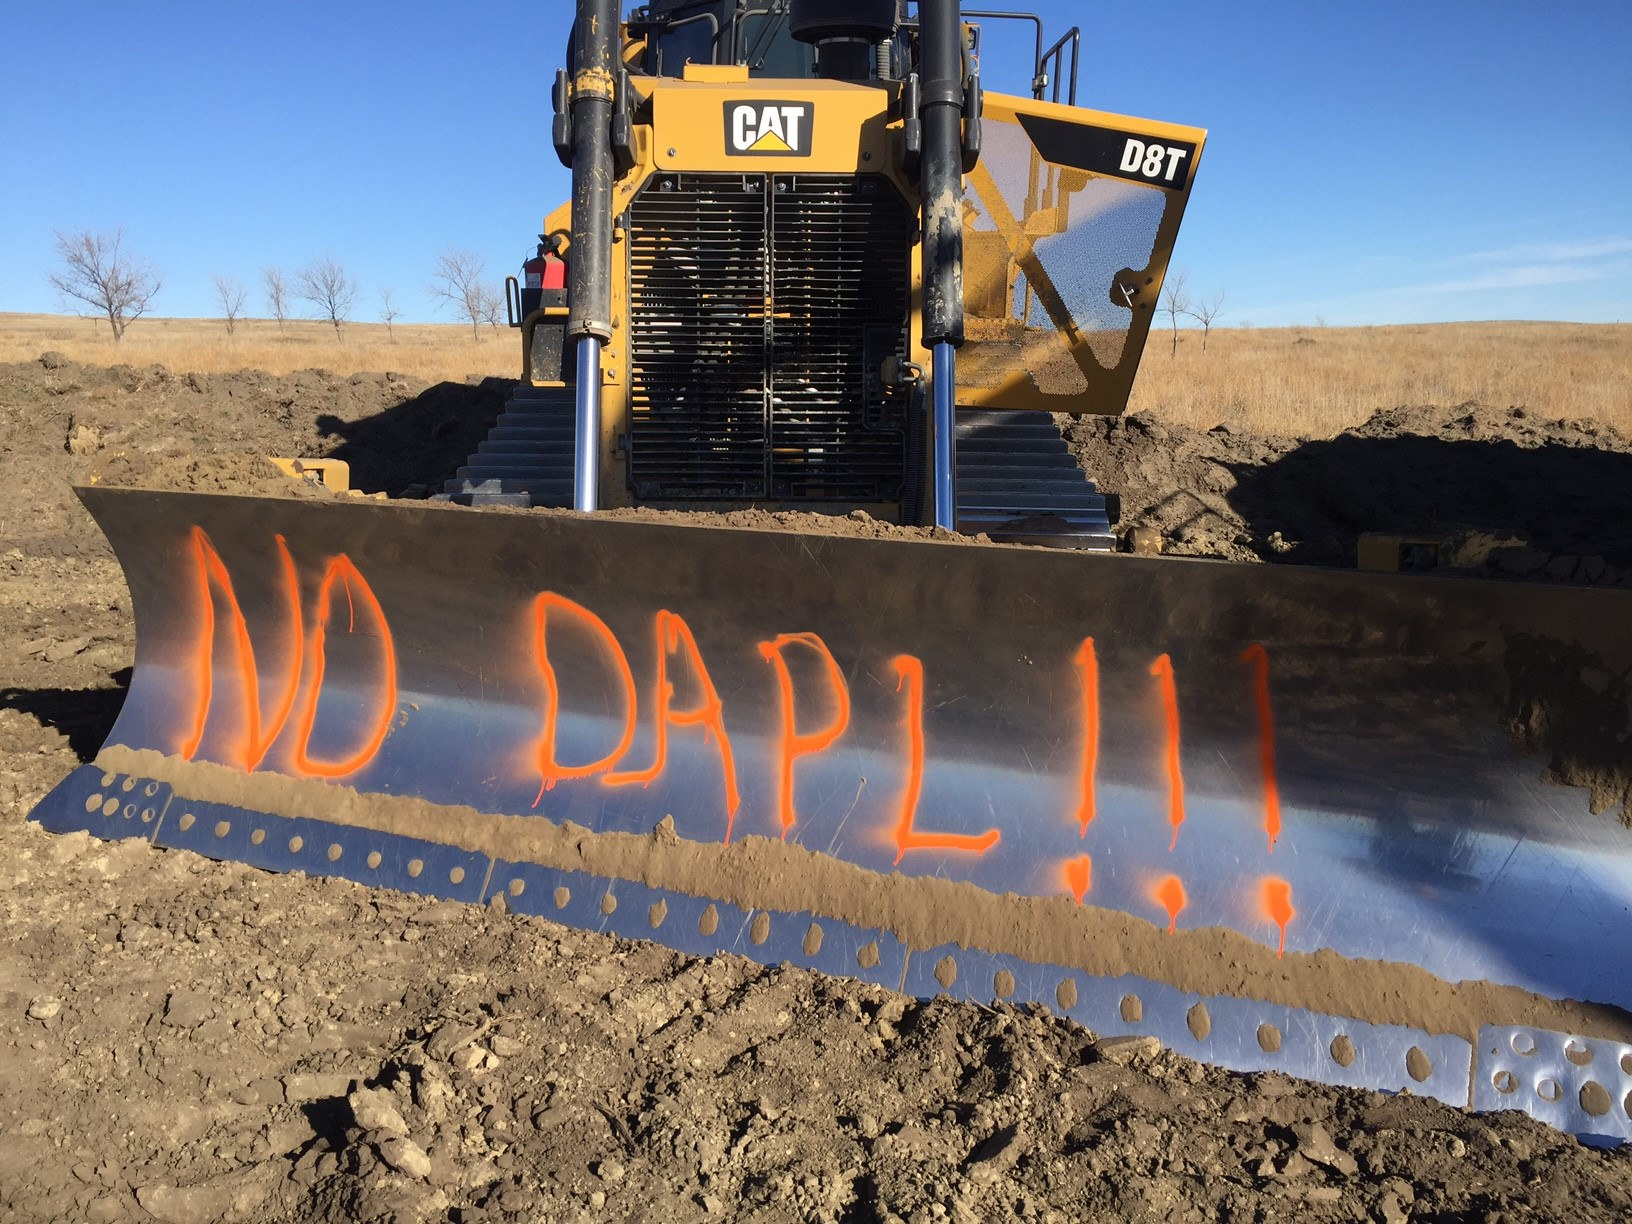 Army Corps still won't issue easement for Dakota Access Pipeline